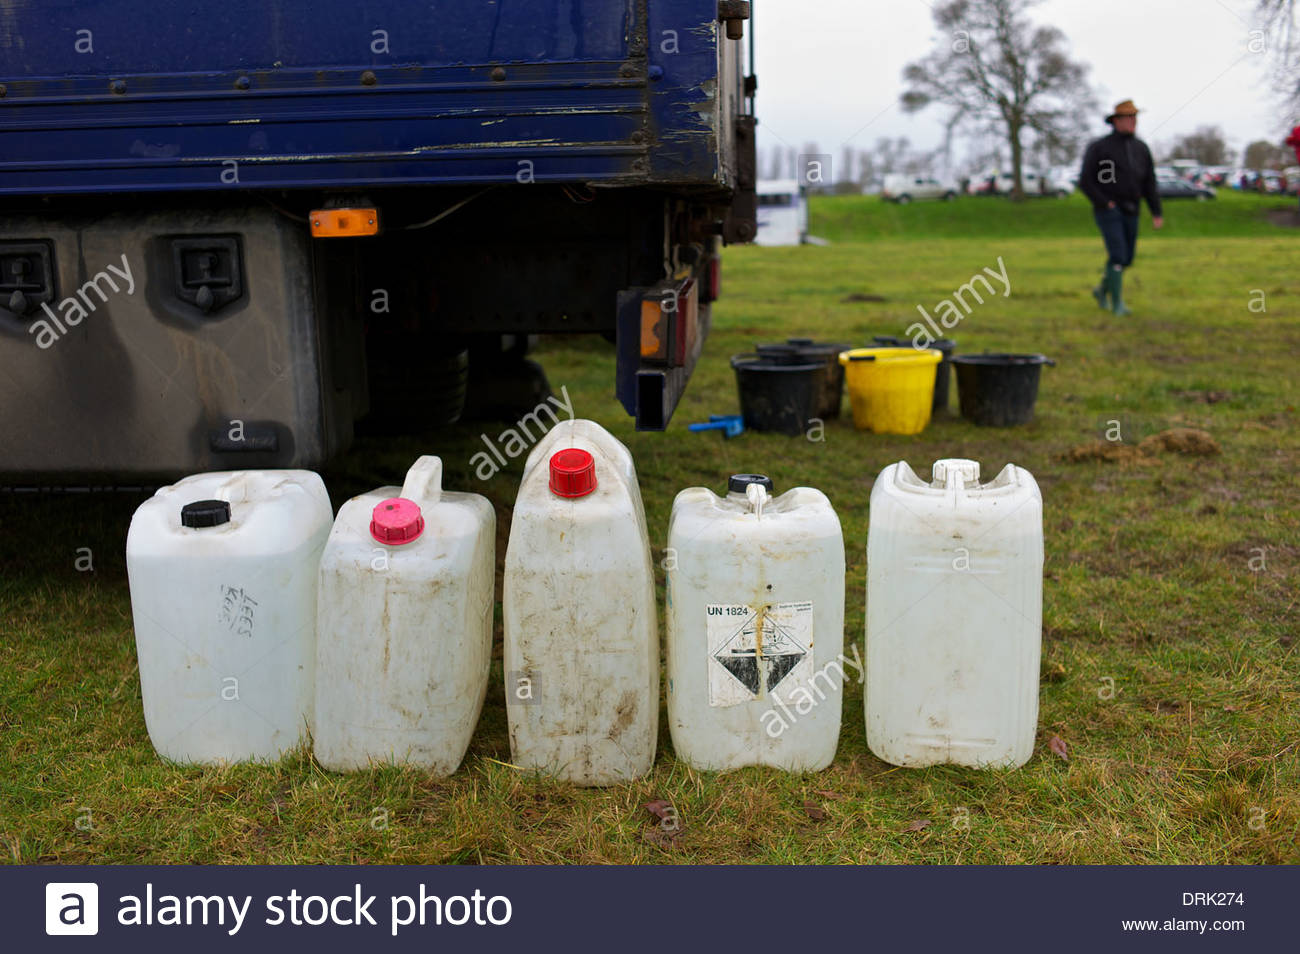 Water supplies at a horse race meeting in the Scottish Borders. - Stock Image